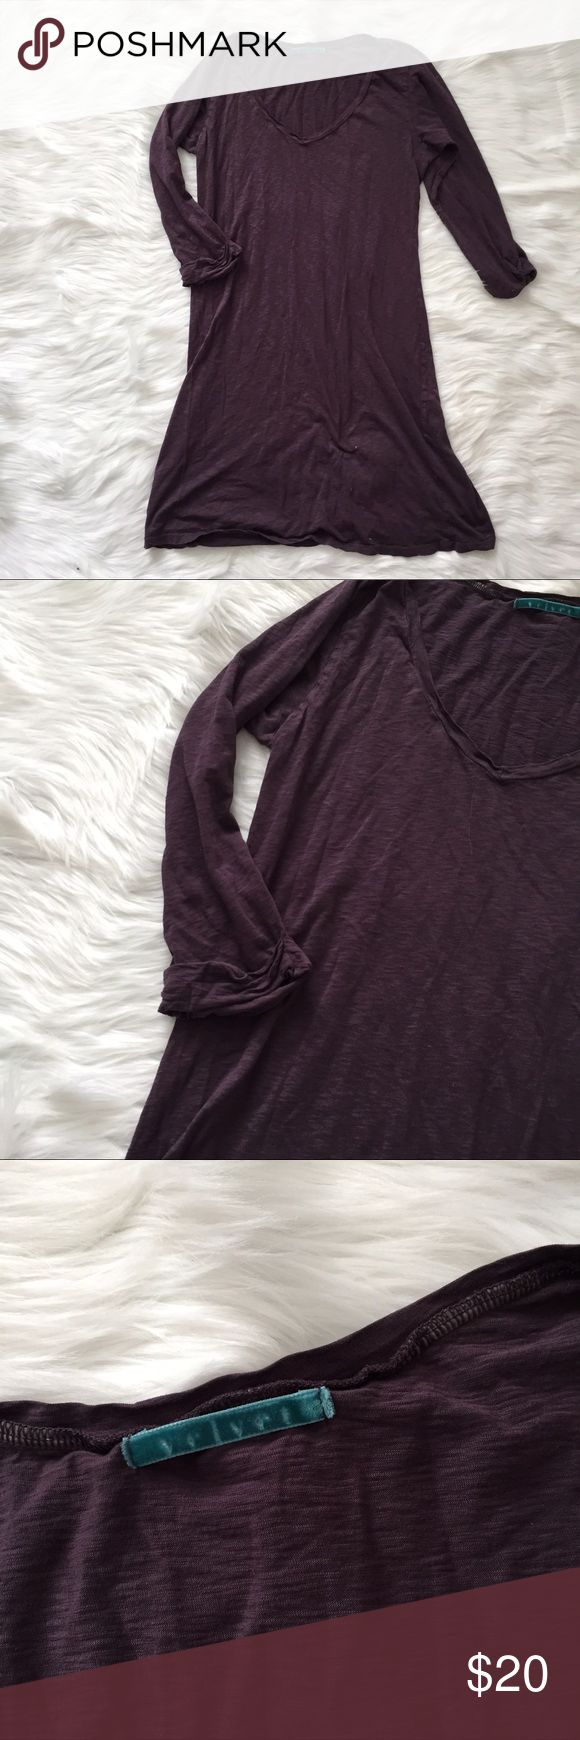 Velvet // Plum Burnout 3/4 Sleeve T-Shirt Dress Used in excellent condition. No Trades / No PayPal /  Smoke-Free Home / Ask Questions! / No Model Requests Please / Like what you see but dont like the price? MAKE ME AN OFFER! Velvet by Graham & Spencer Dresses Long Sleeve